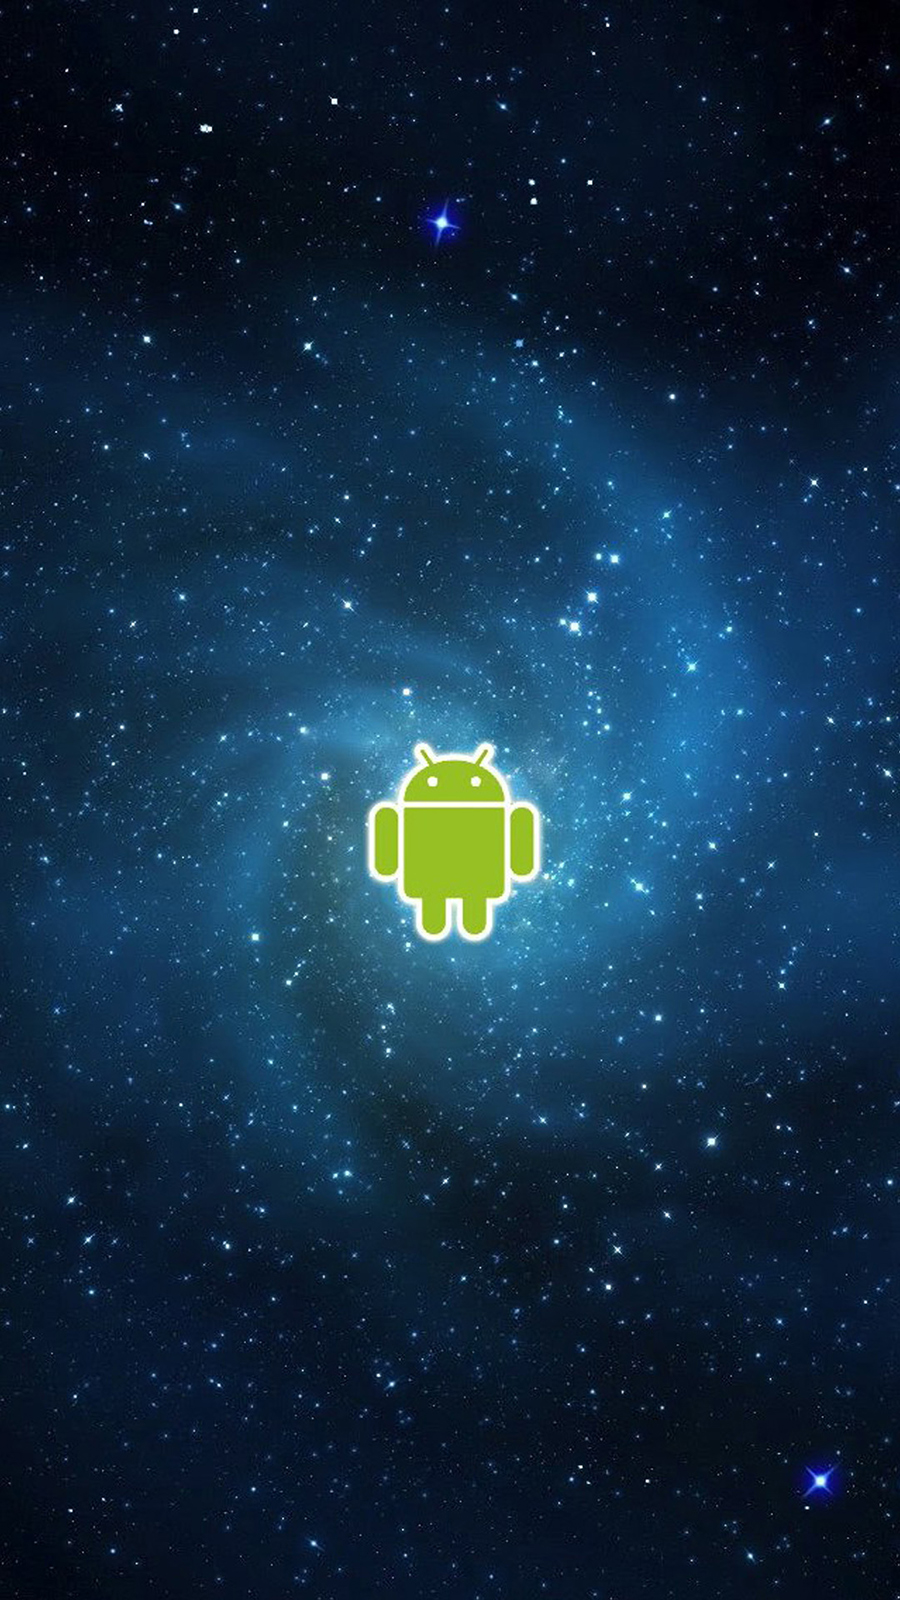 Android Logo Galaxy HD Wallpapers Free Download